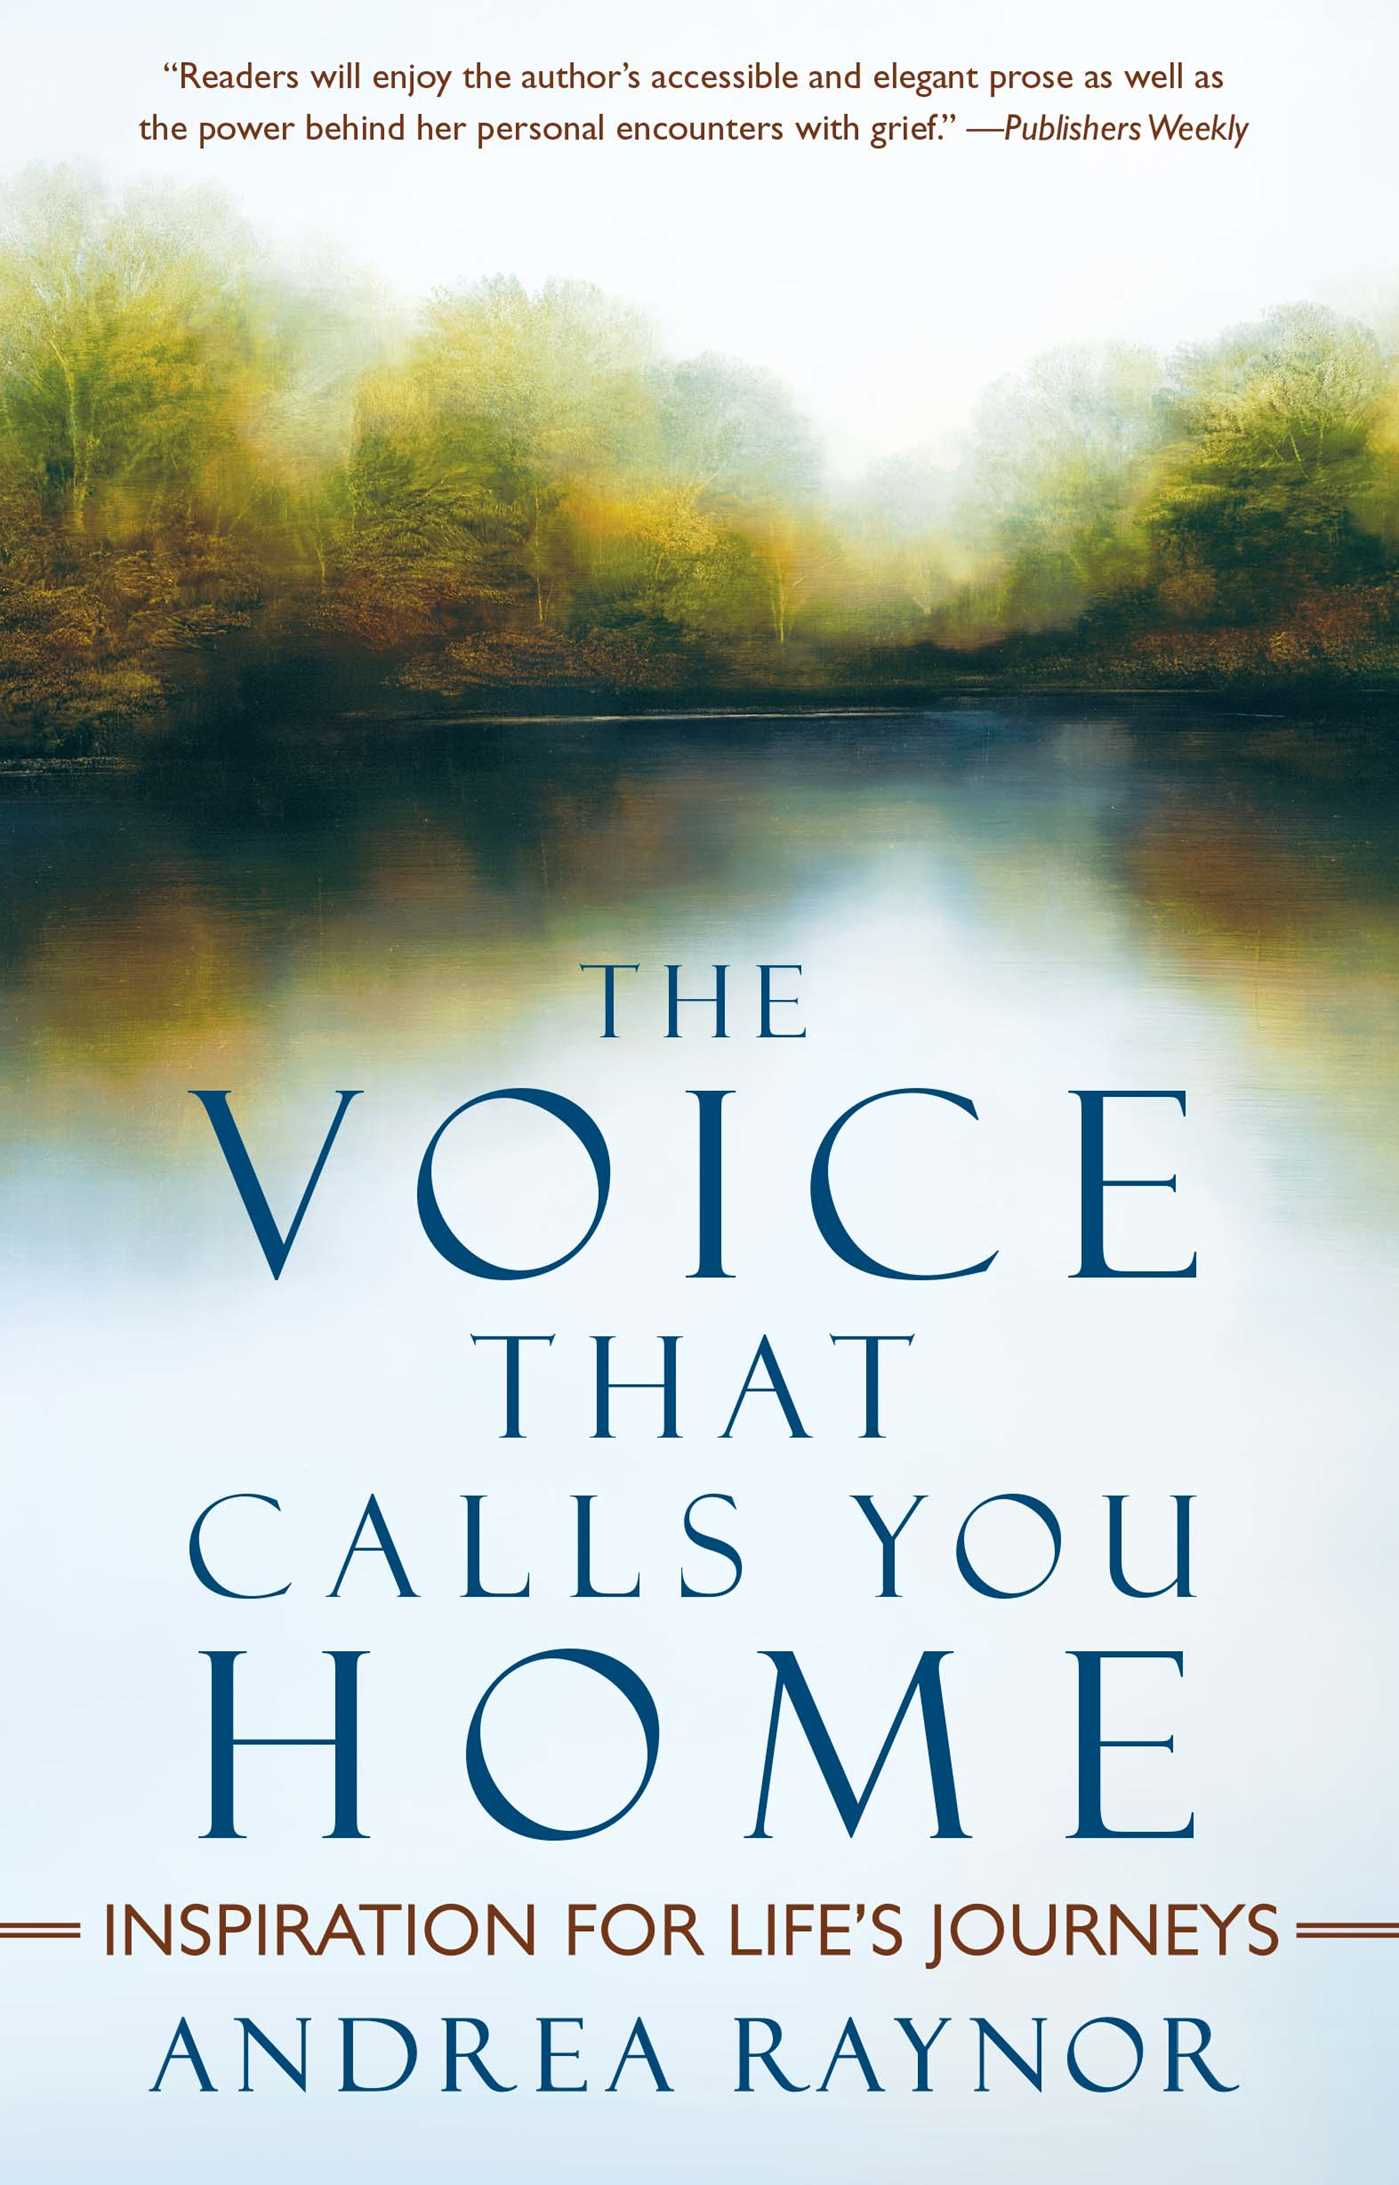 The voice that calls you home 9781439100707 hr